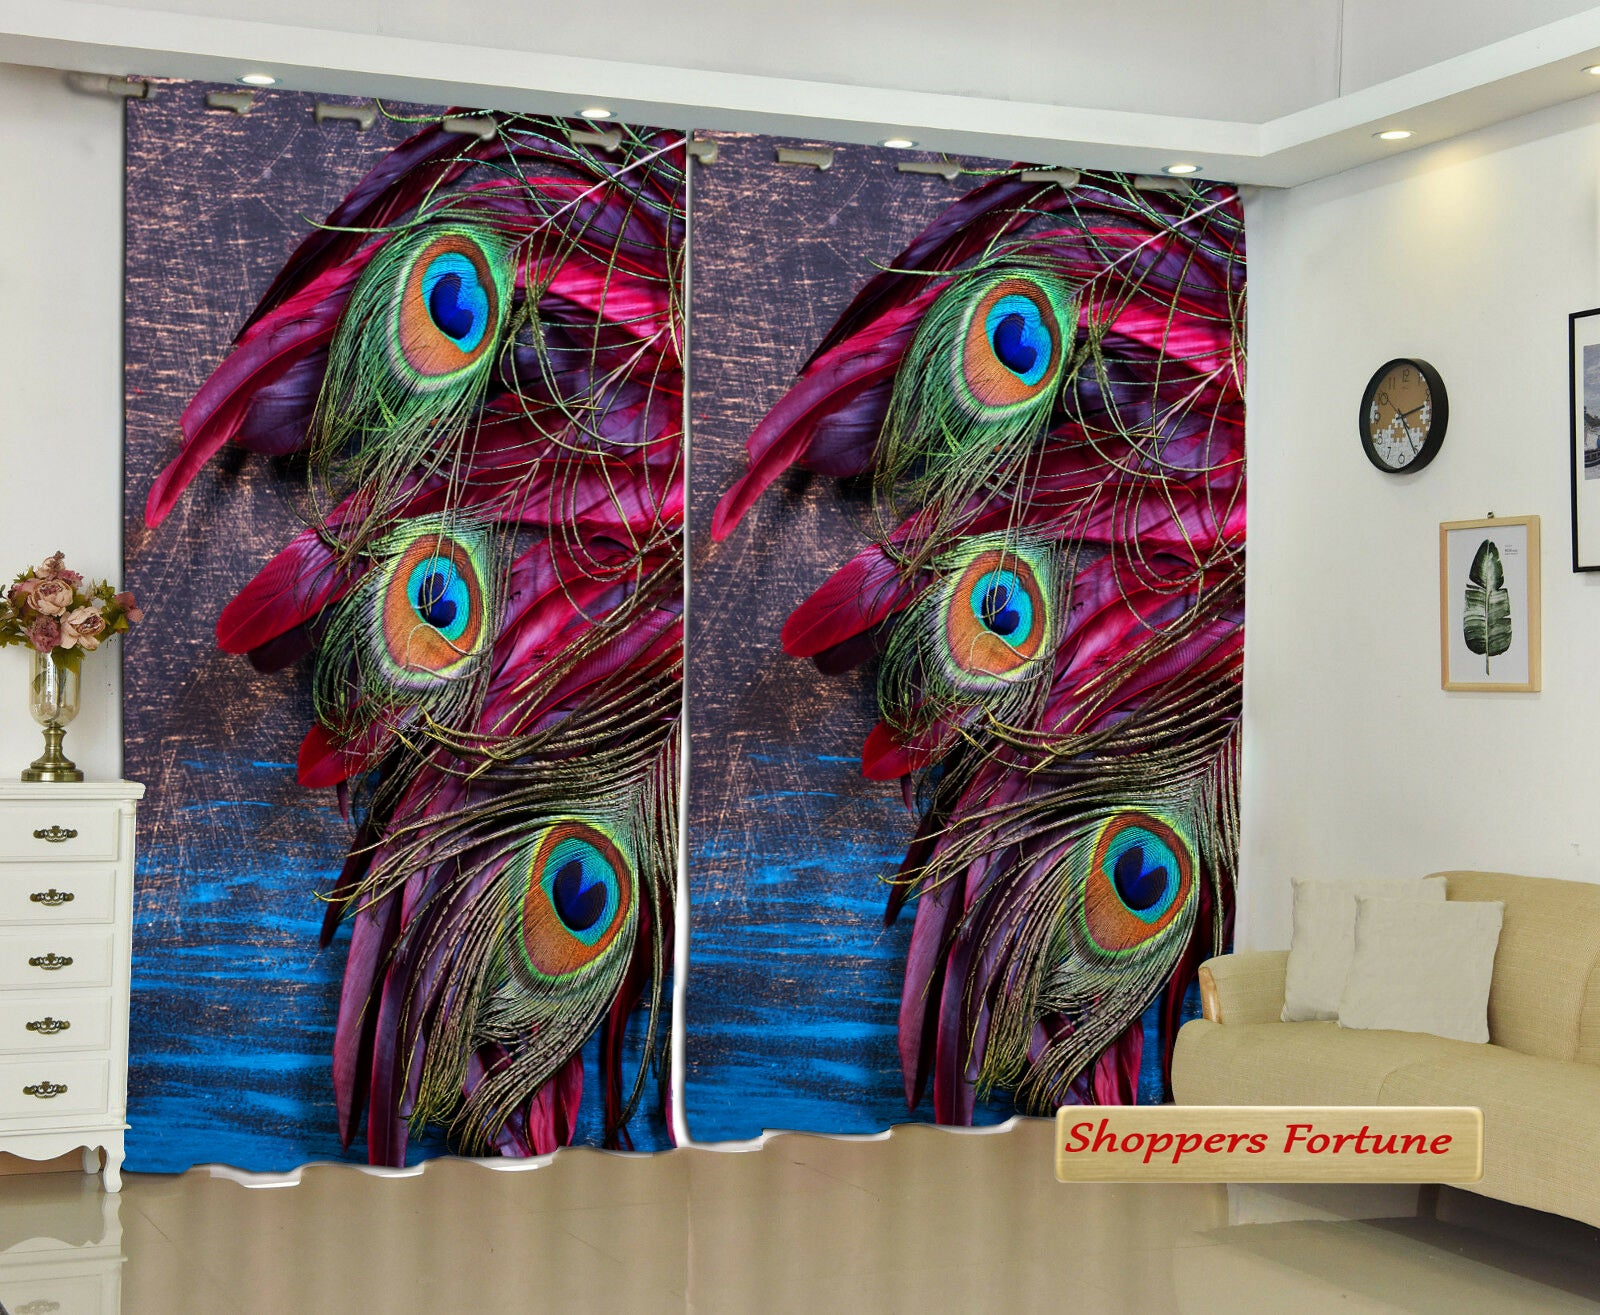 Premium Digital Curtains - Peacock's Wings of Destiny(Set of 2)